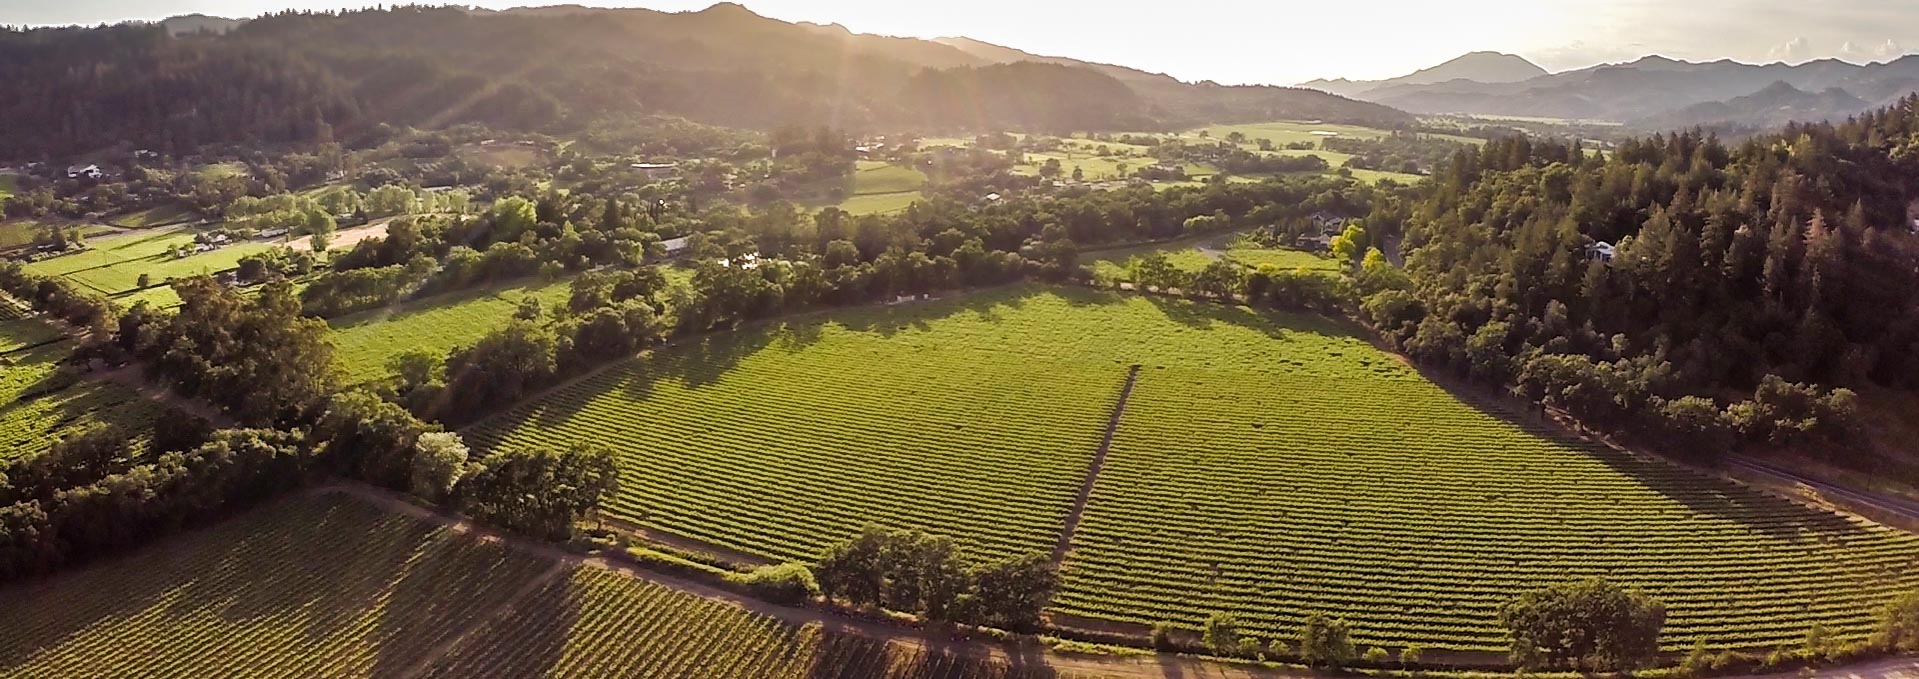 Drone Photography for Wineries